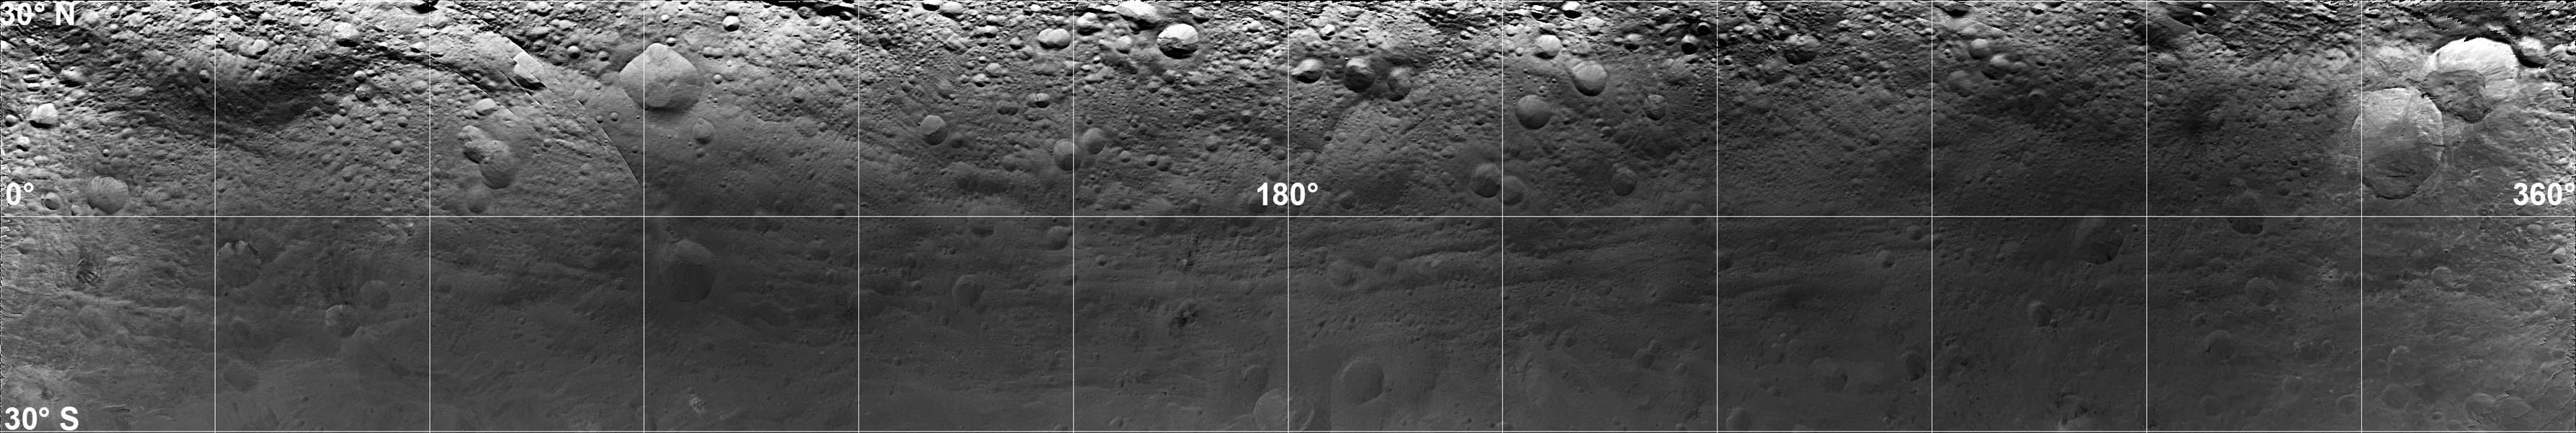 Mosaic Image of Vesta's Surface